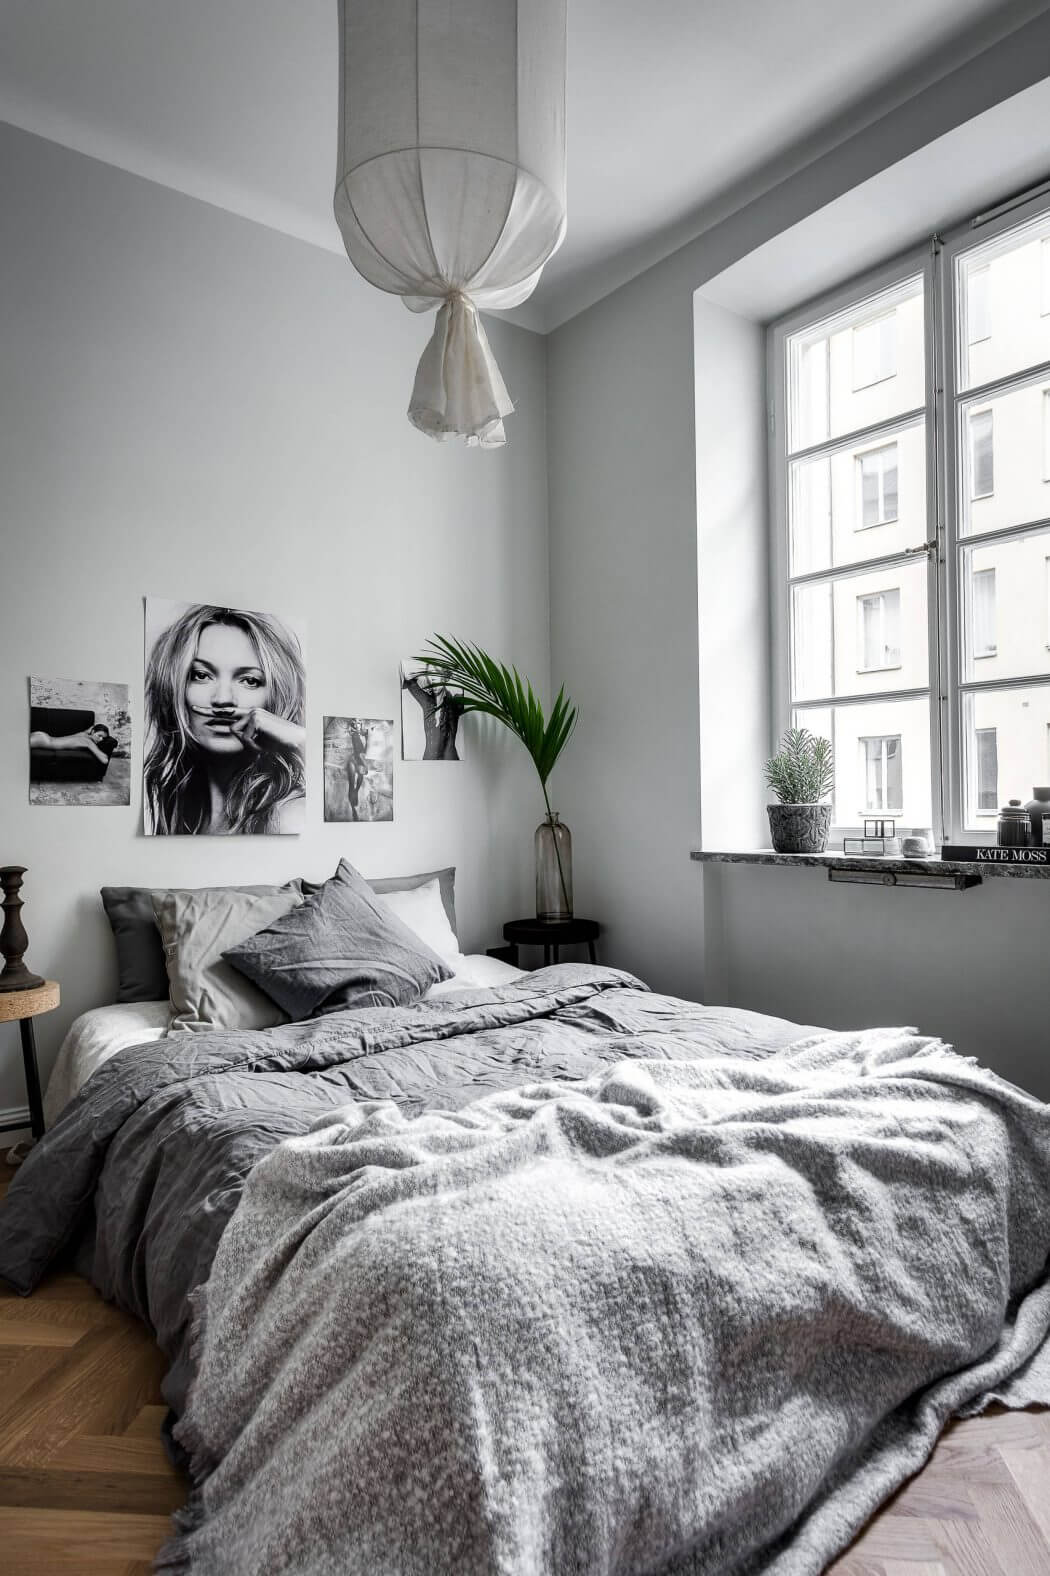 Applying Scandinavian Small Apartment Design Along With ... on Bedroom Ideas Small Room  id=79973